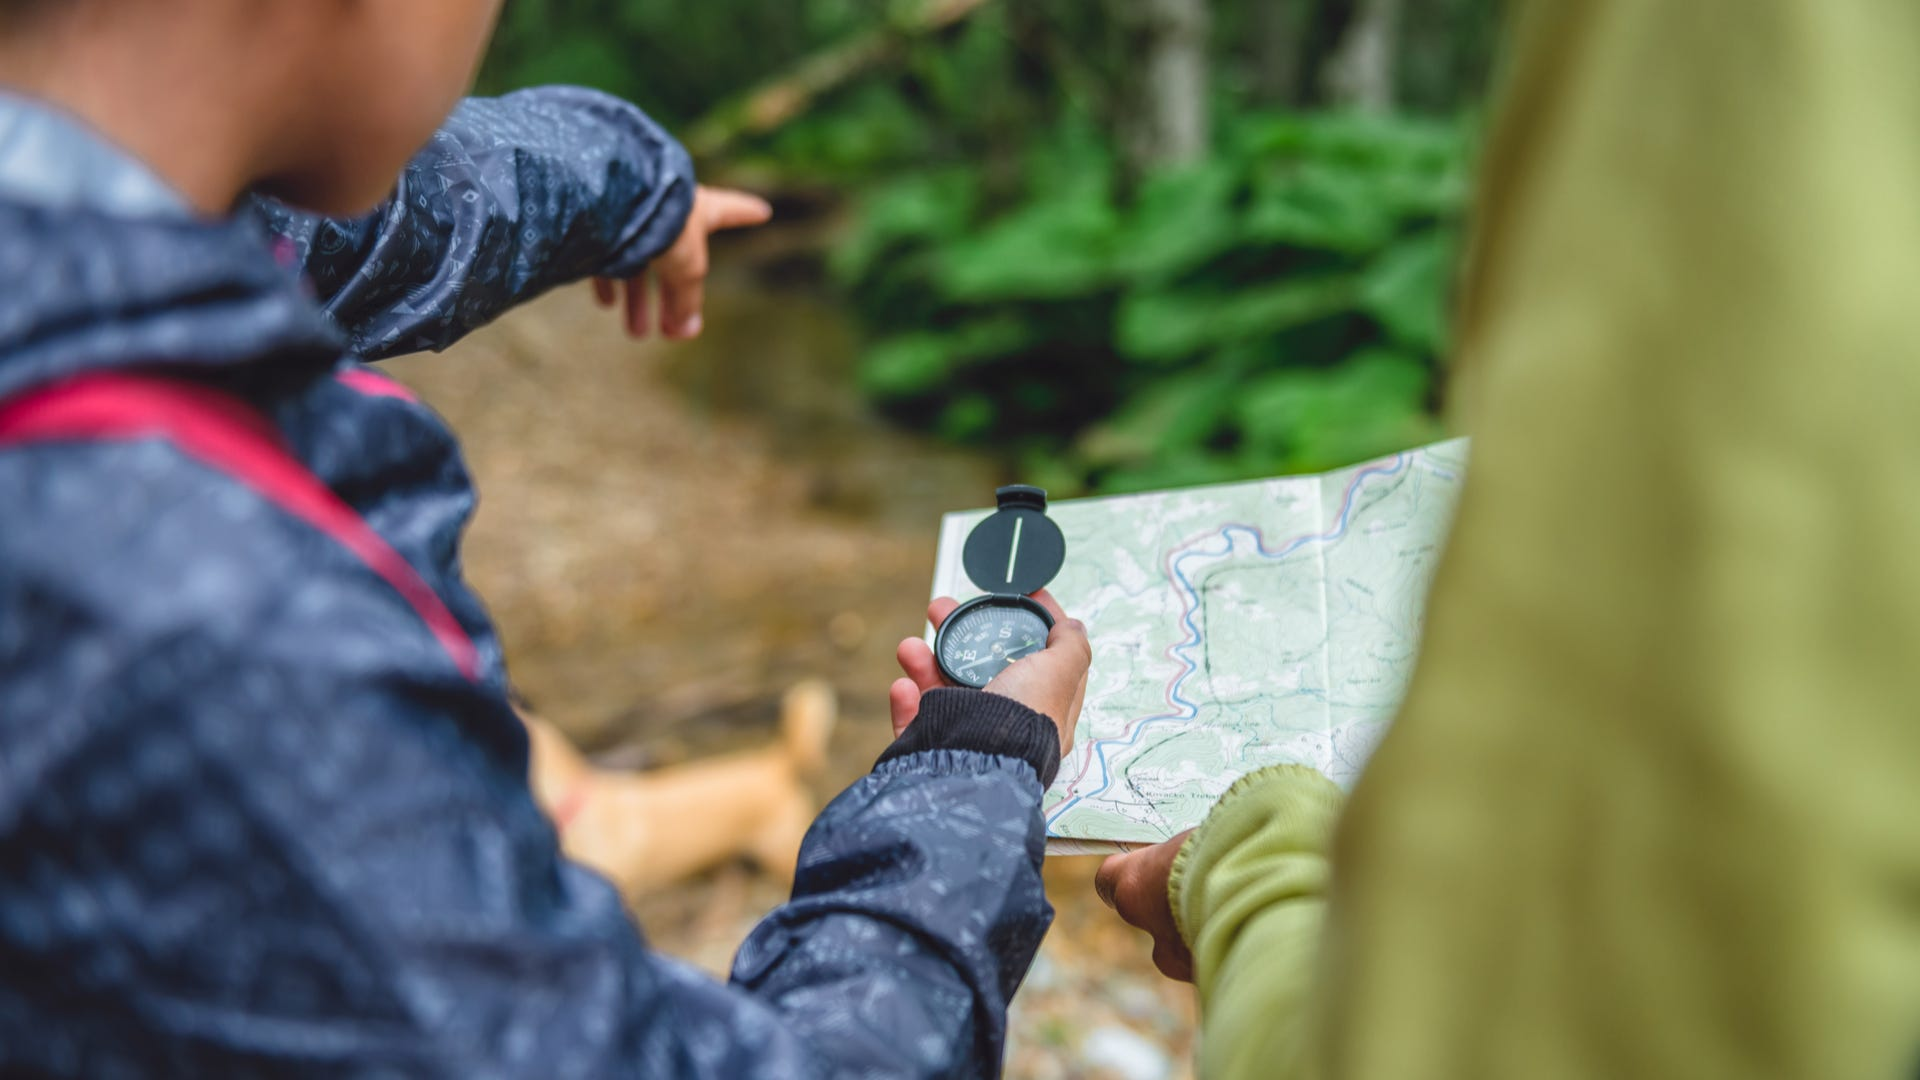 Two people look at a map and a compass out in the woods. One person points ahead.